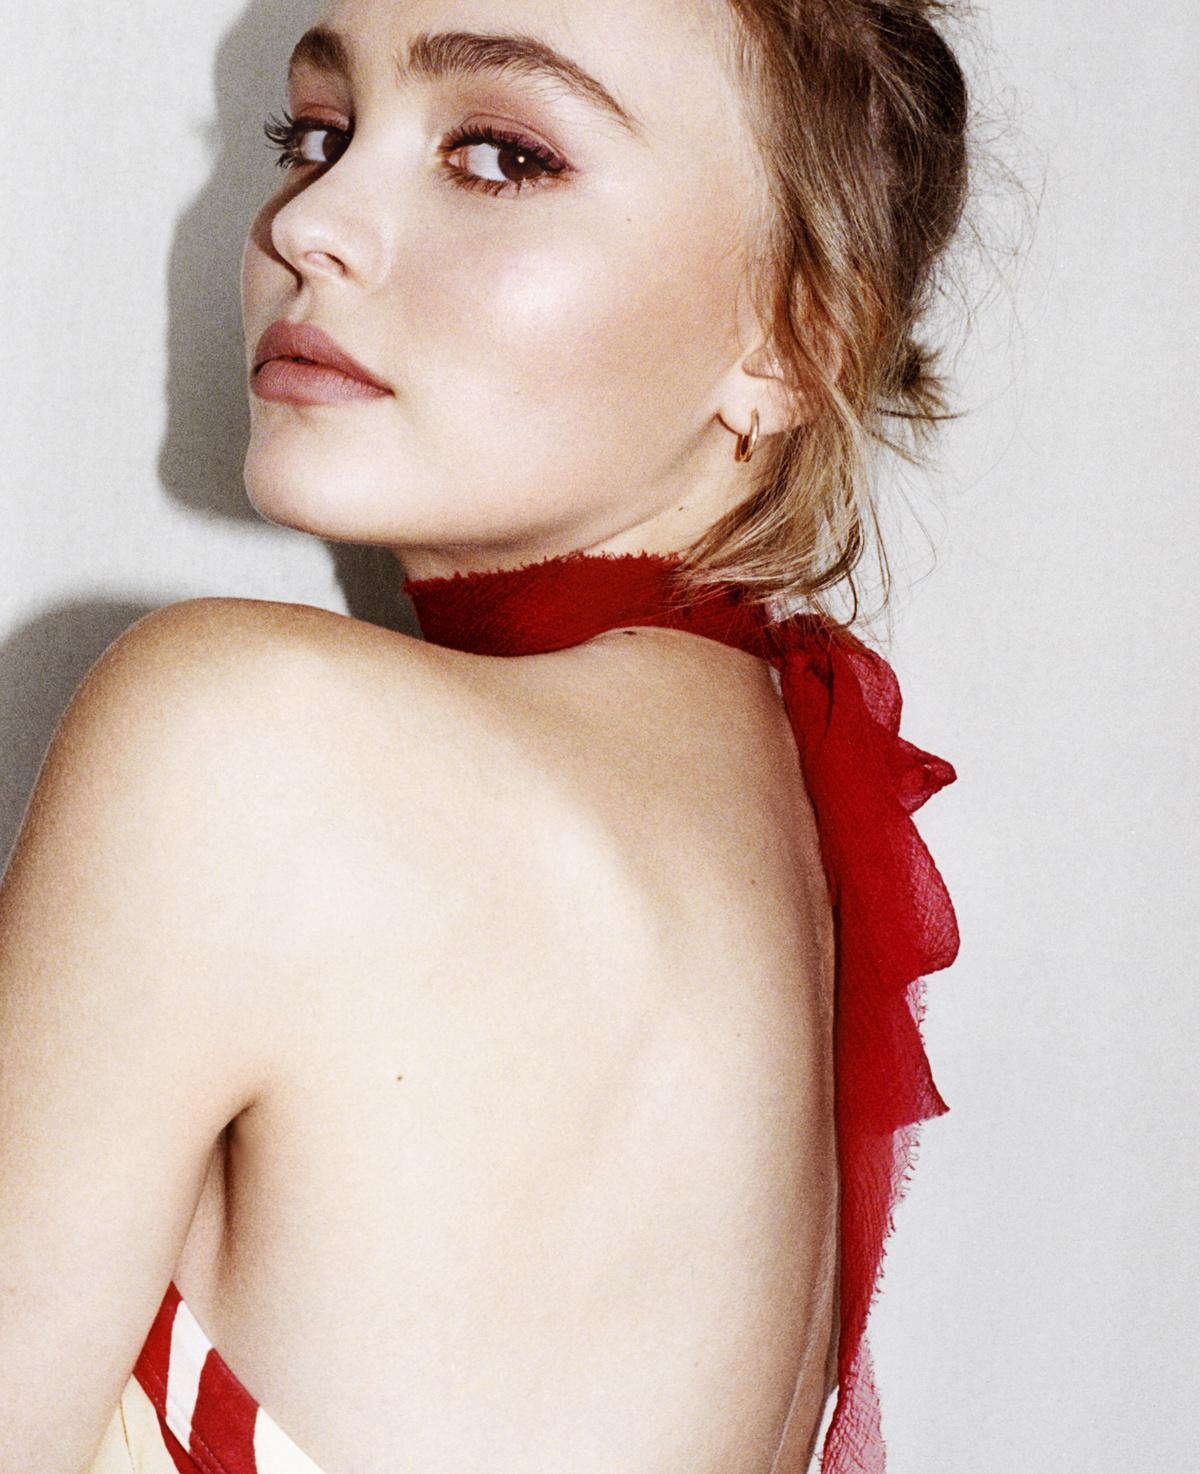 a-guide-to-cool-lily-rose-depp-vanessa-paradis-folkr-9